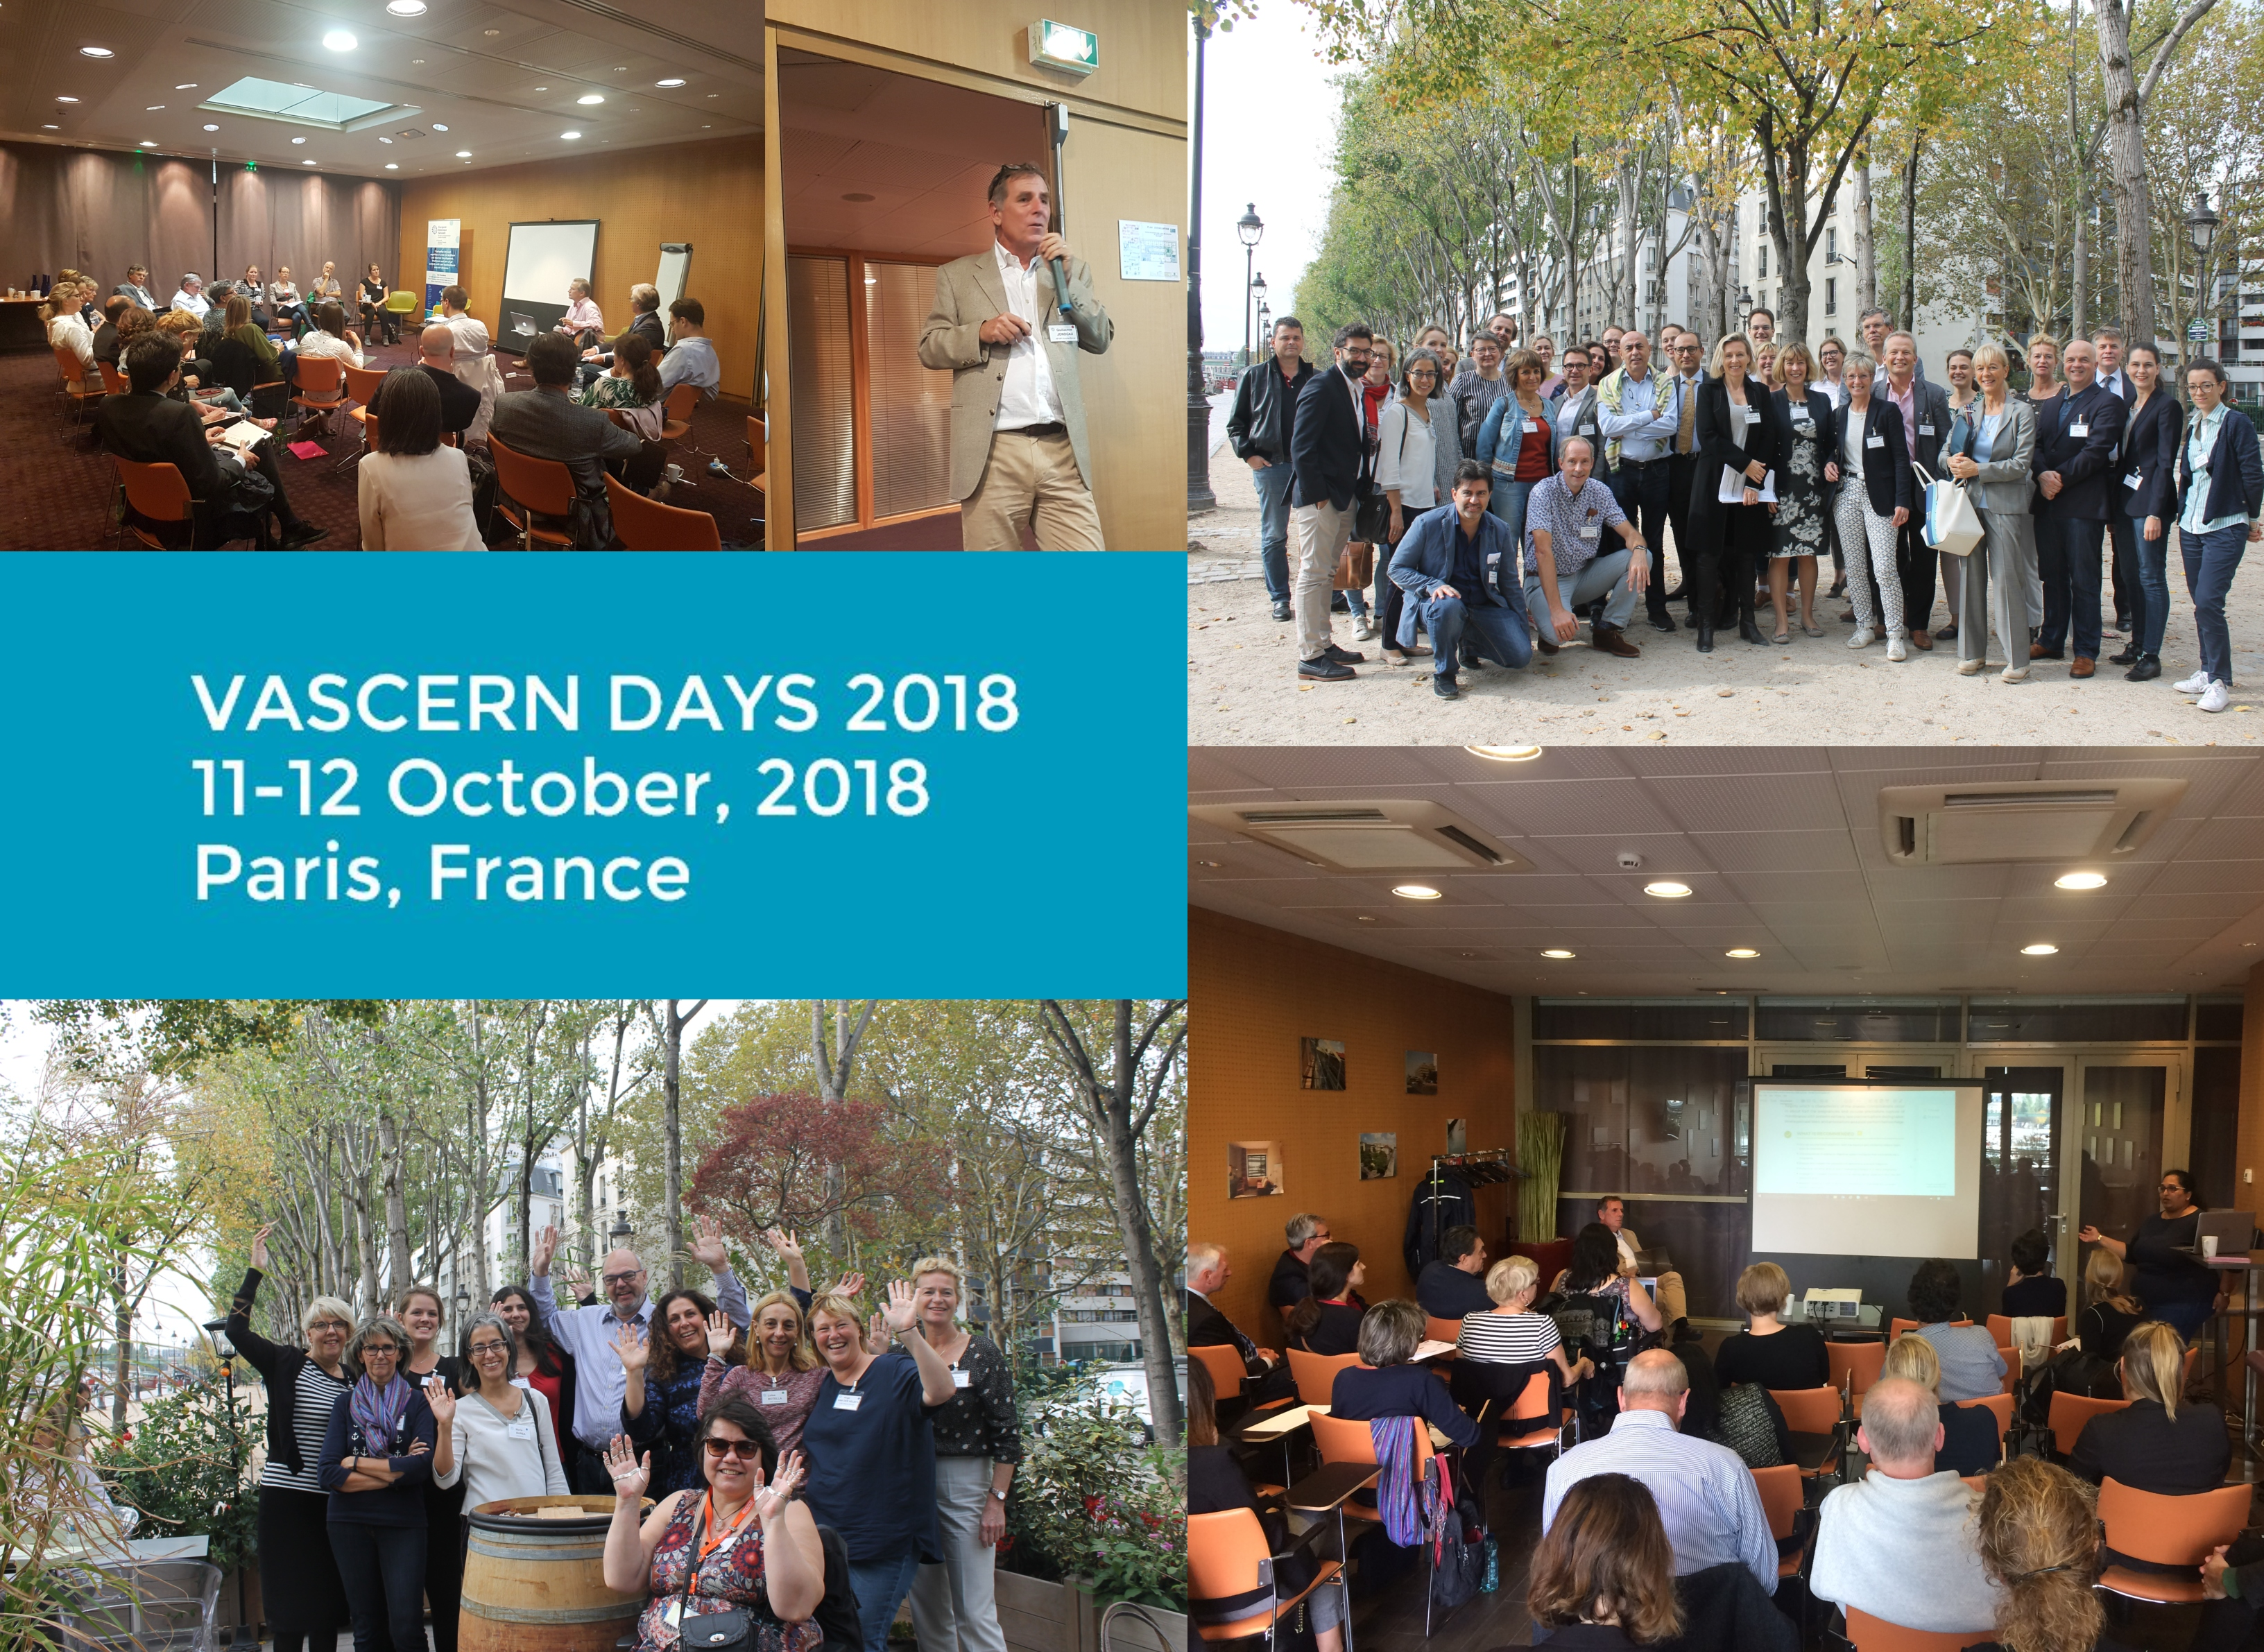 VASCERN Days 2018: Highlights from our 2nd Annual Seminar!